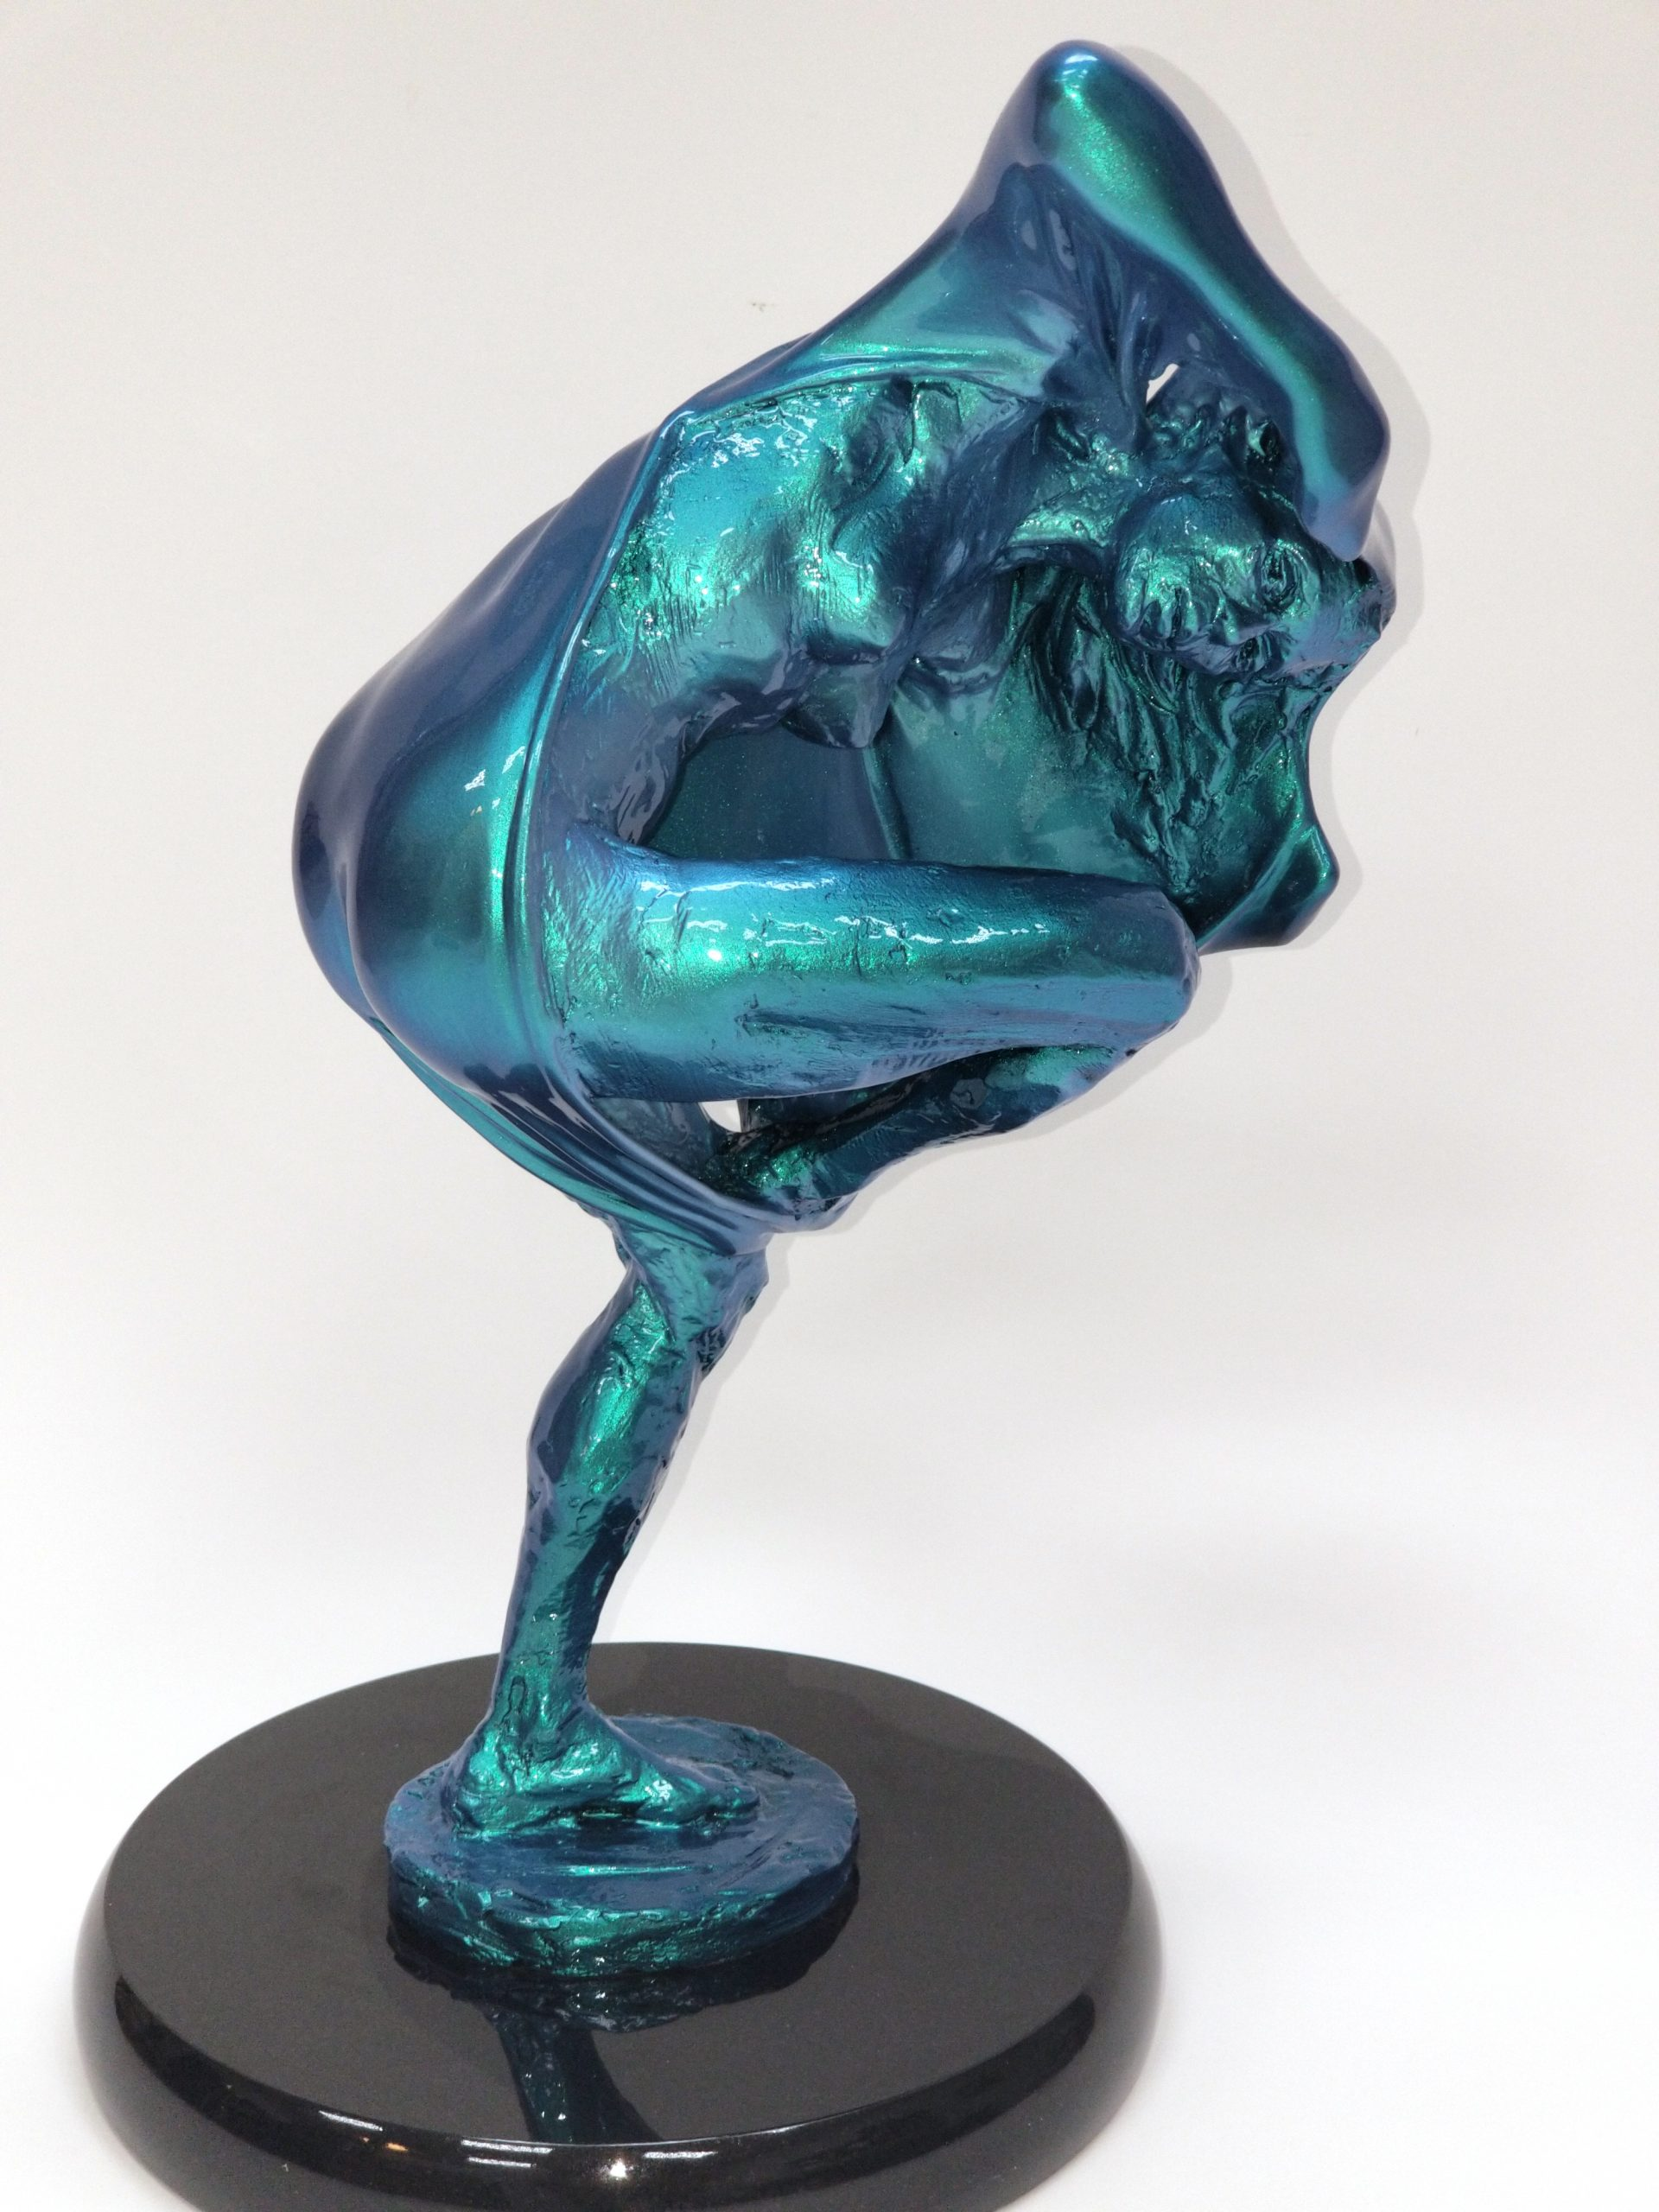 paige bradley bronze sculpture